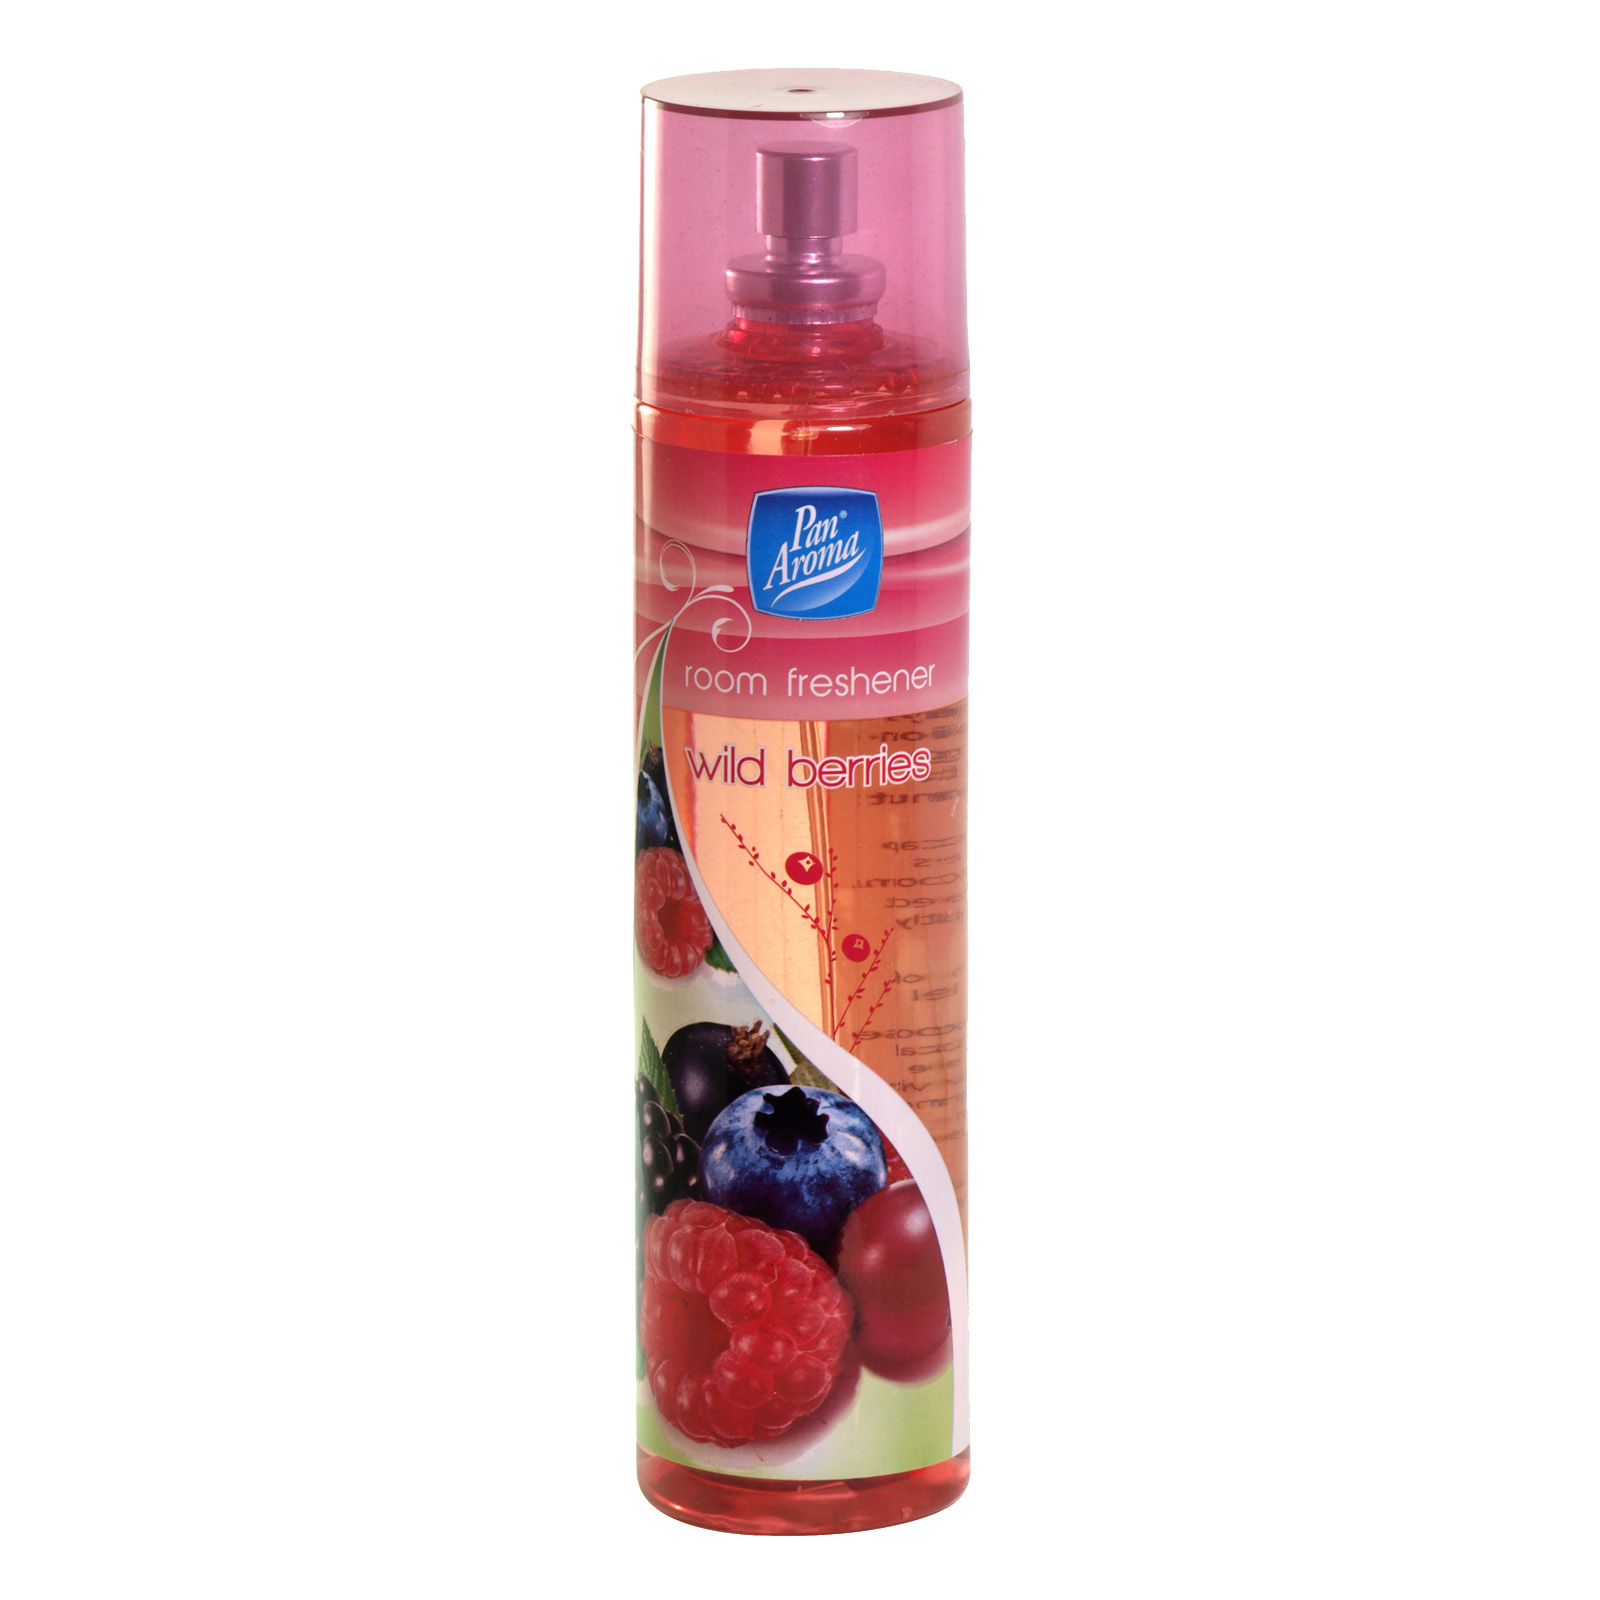 PAN AROMA ROOM SPY 200ML WILD BERRIES